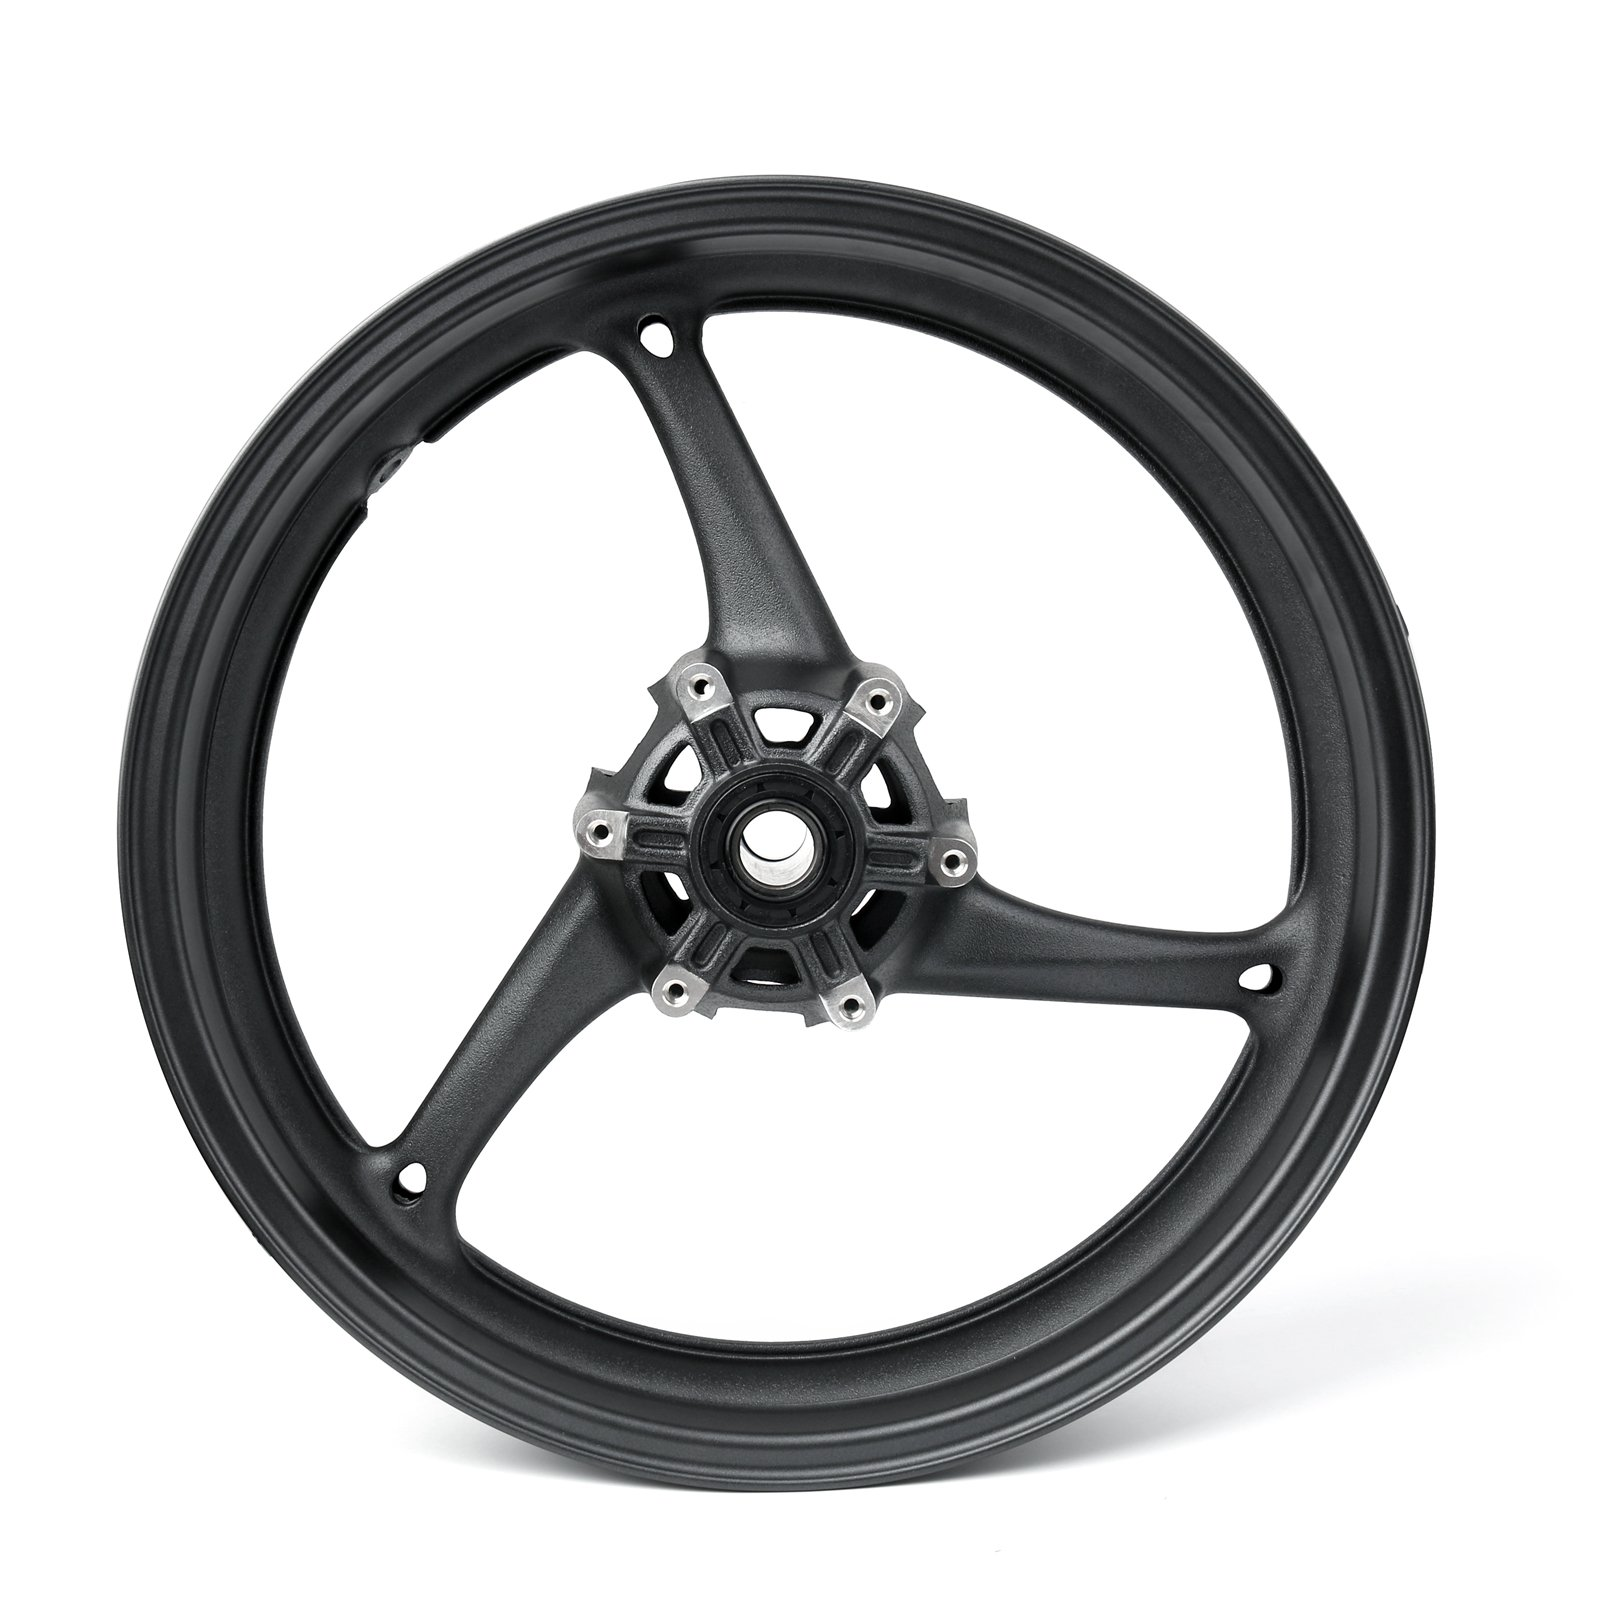 Areyourshop Front Wheel Rim For Suzuki GSXR 600 750 2008-2010